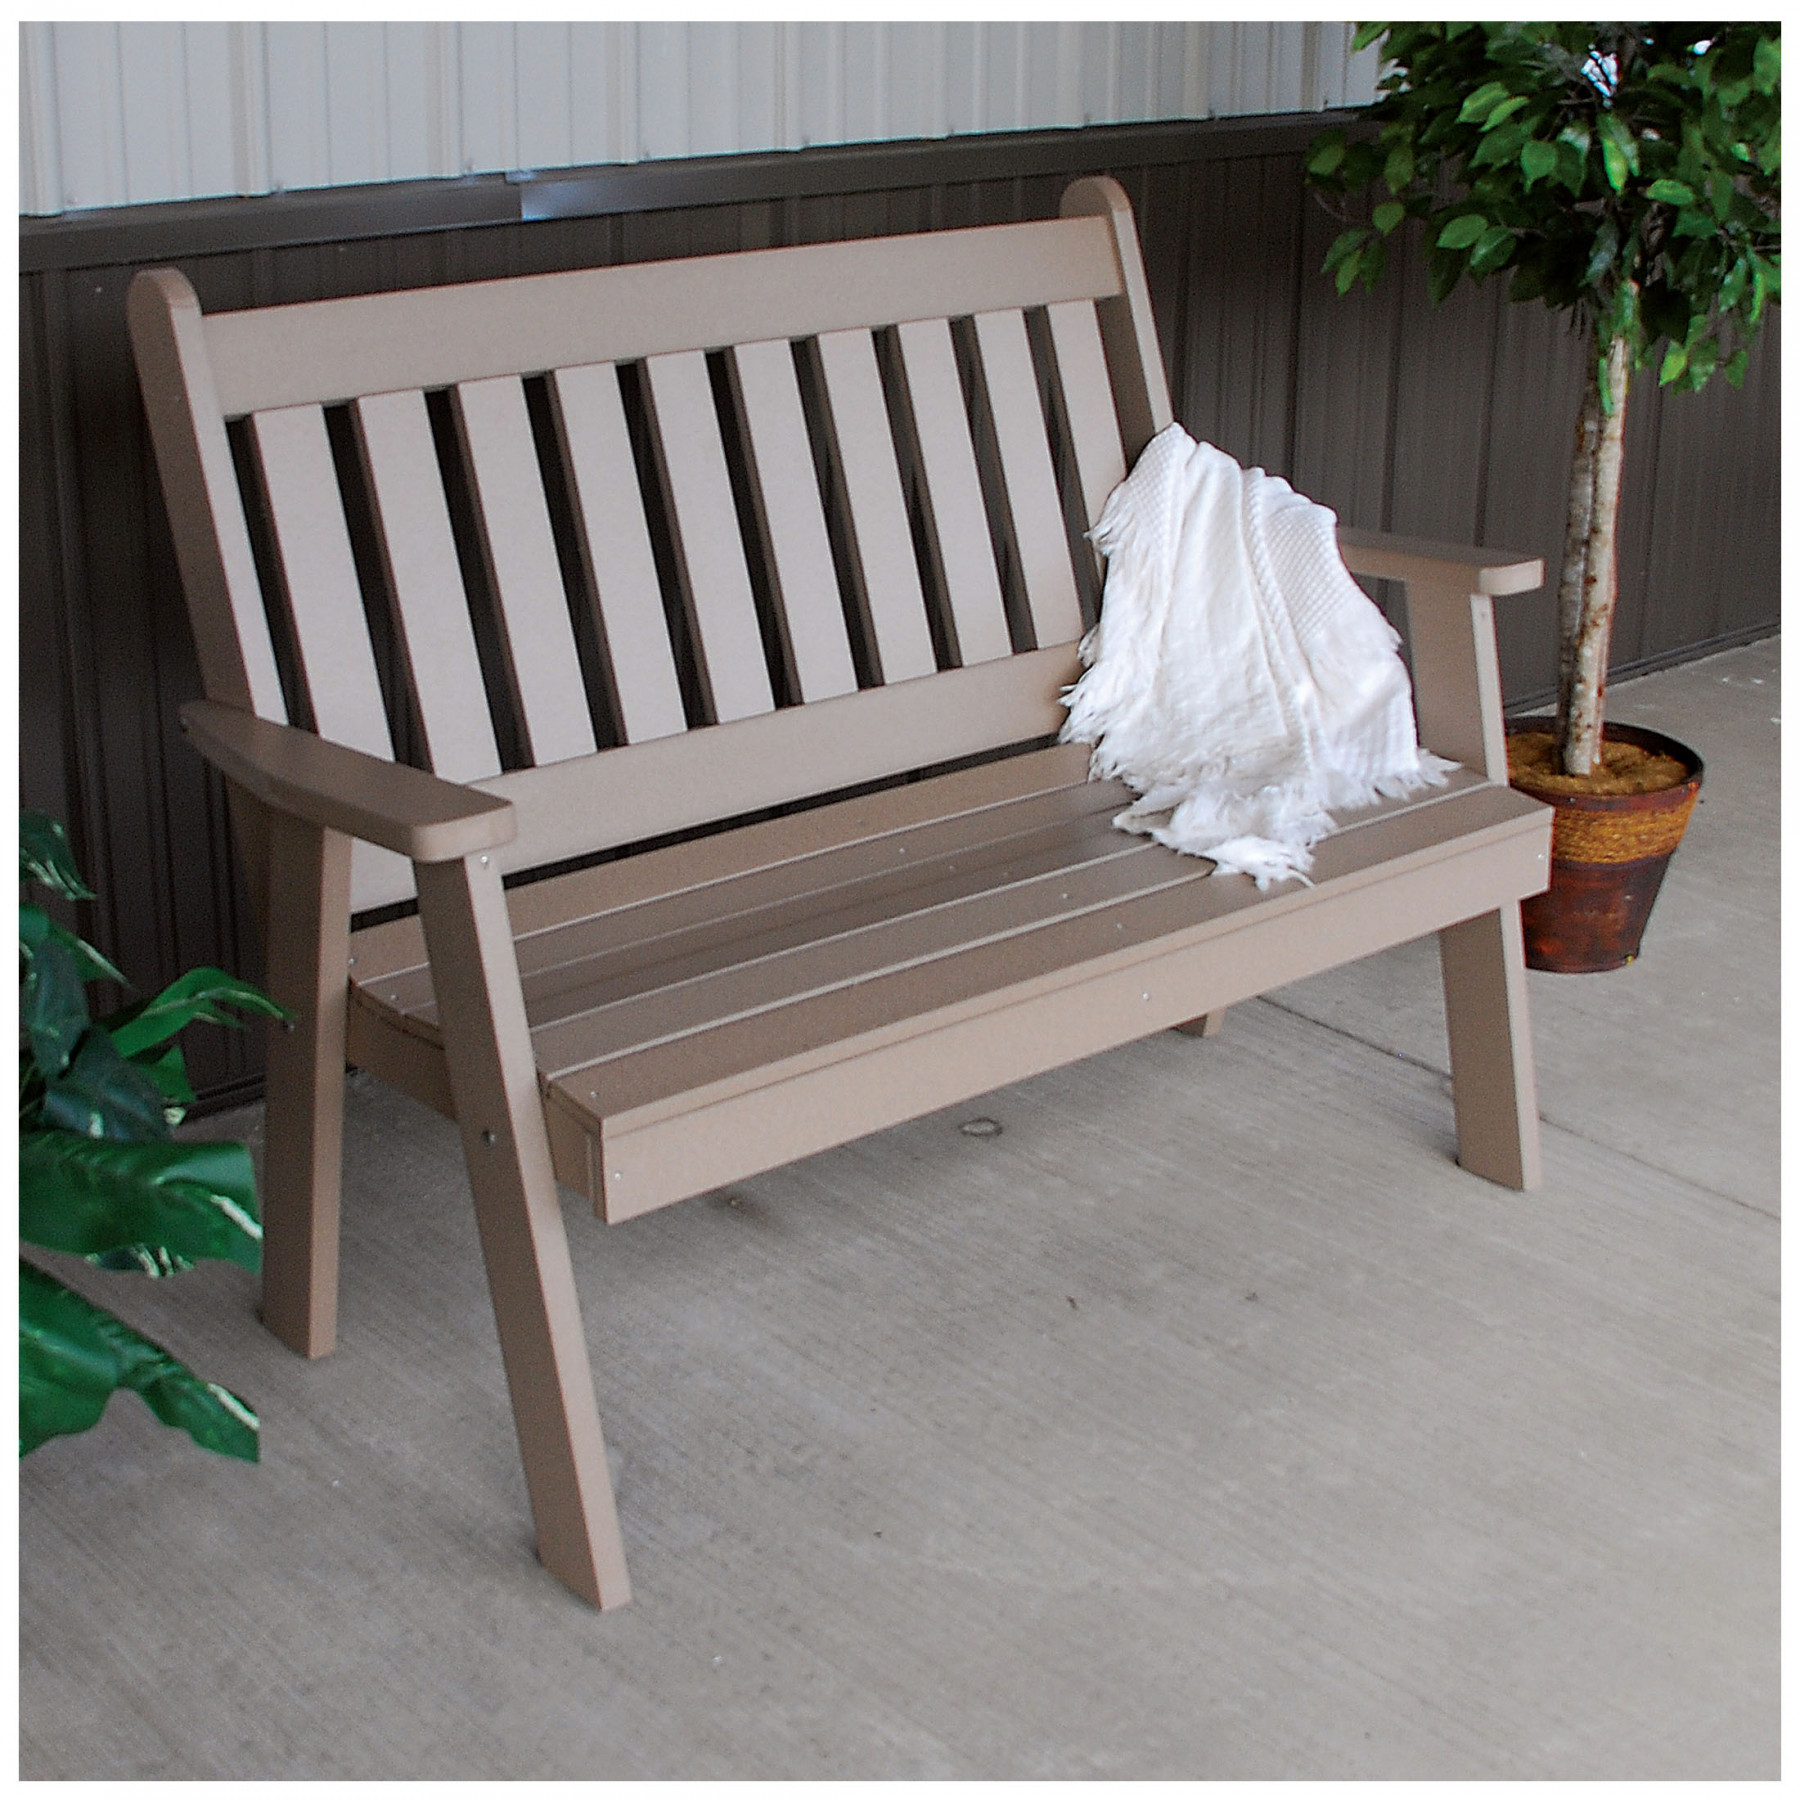 A l furniture 4 ft poly traditional english garden bench for Traditional garden furniture